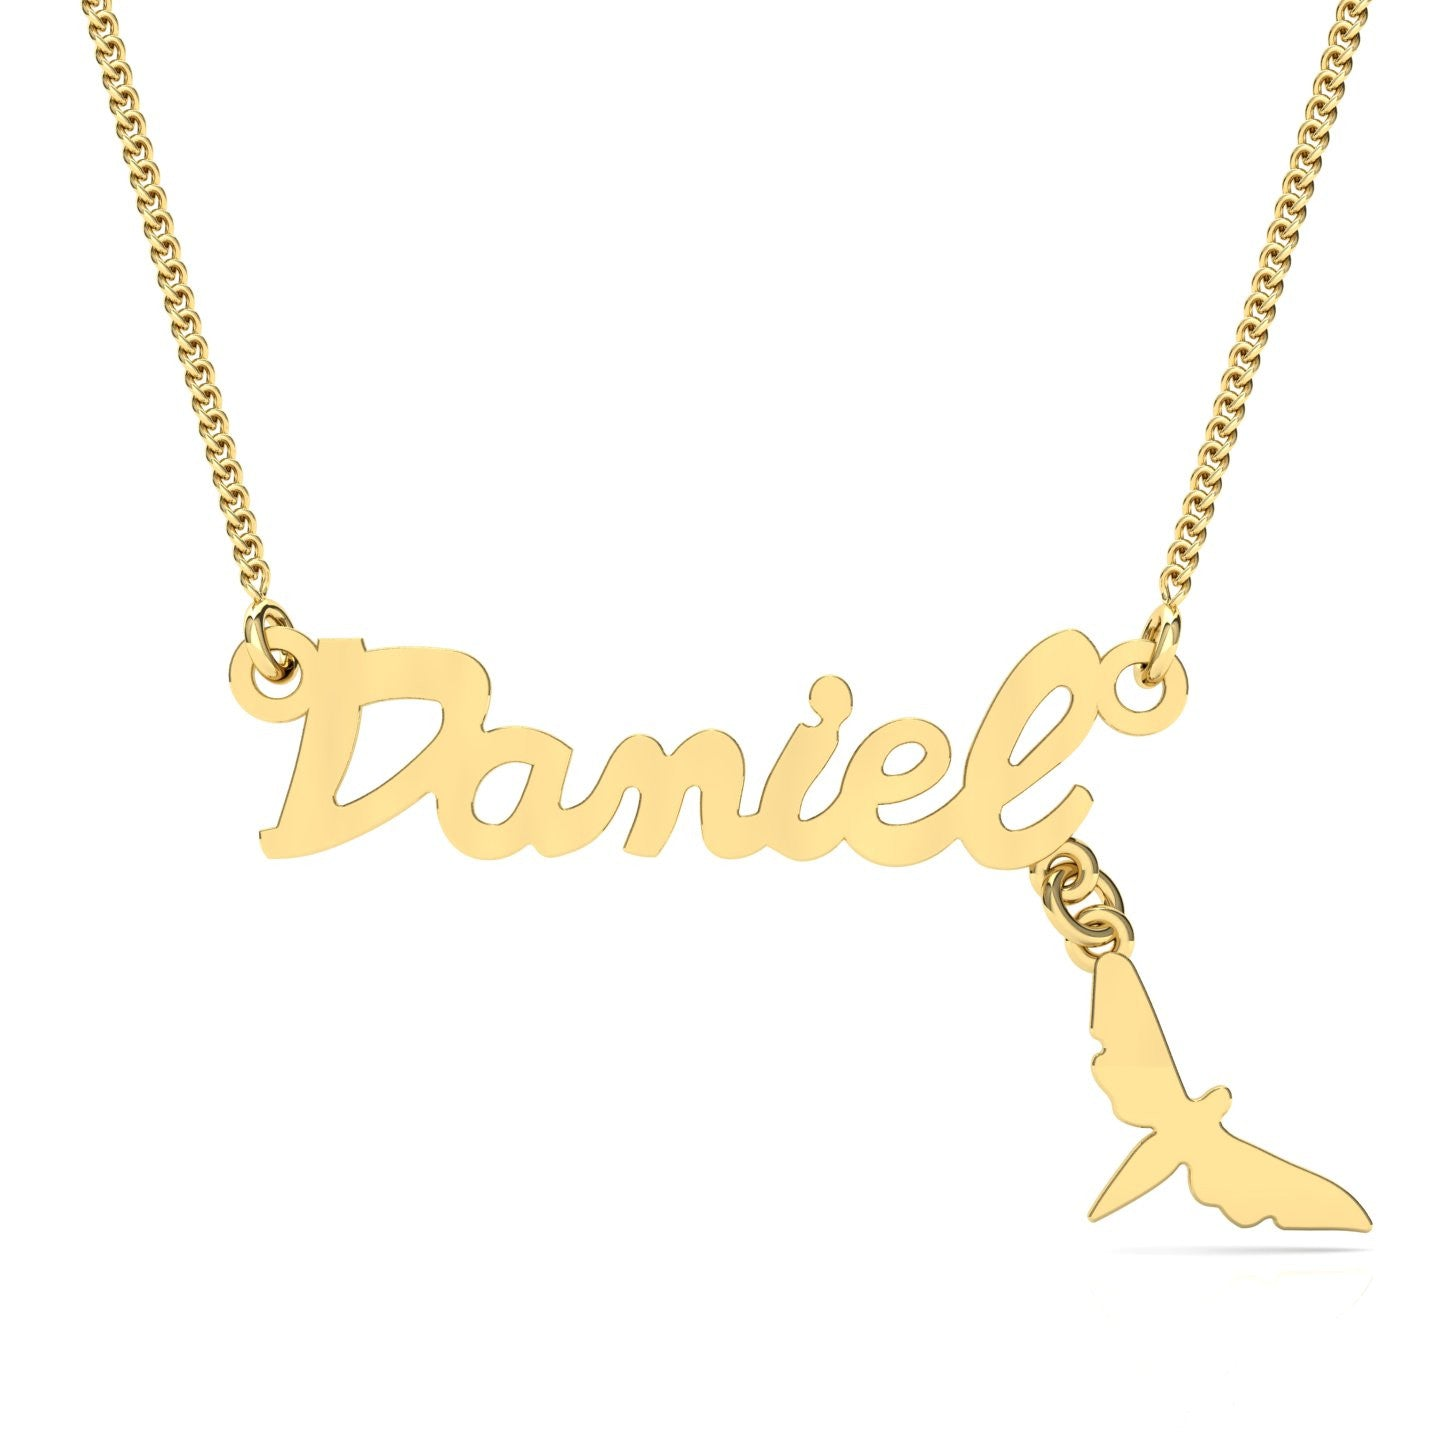 names personalized gold itm j plated immediately a necklace name available jewellery silver